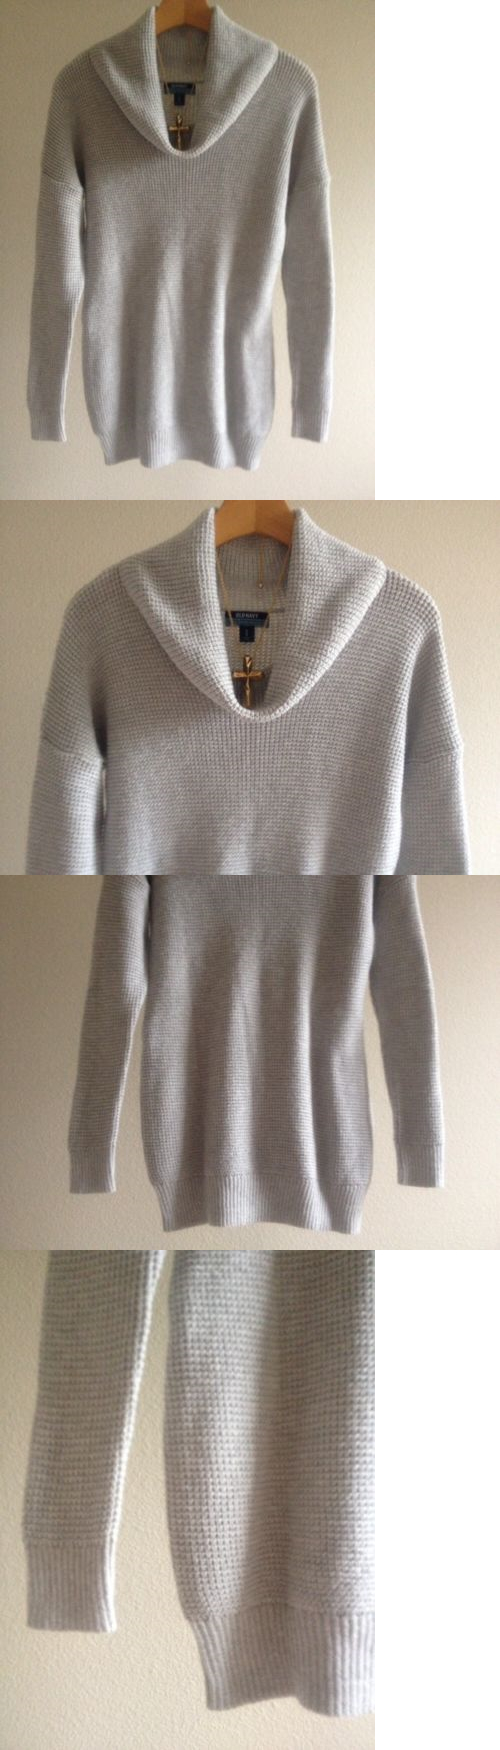 Sweaters 11538: Nwt Old Navy Cowl Neck Maternity Sweater Sz. Xl ...